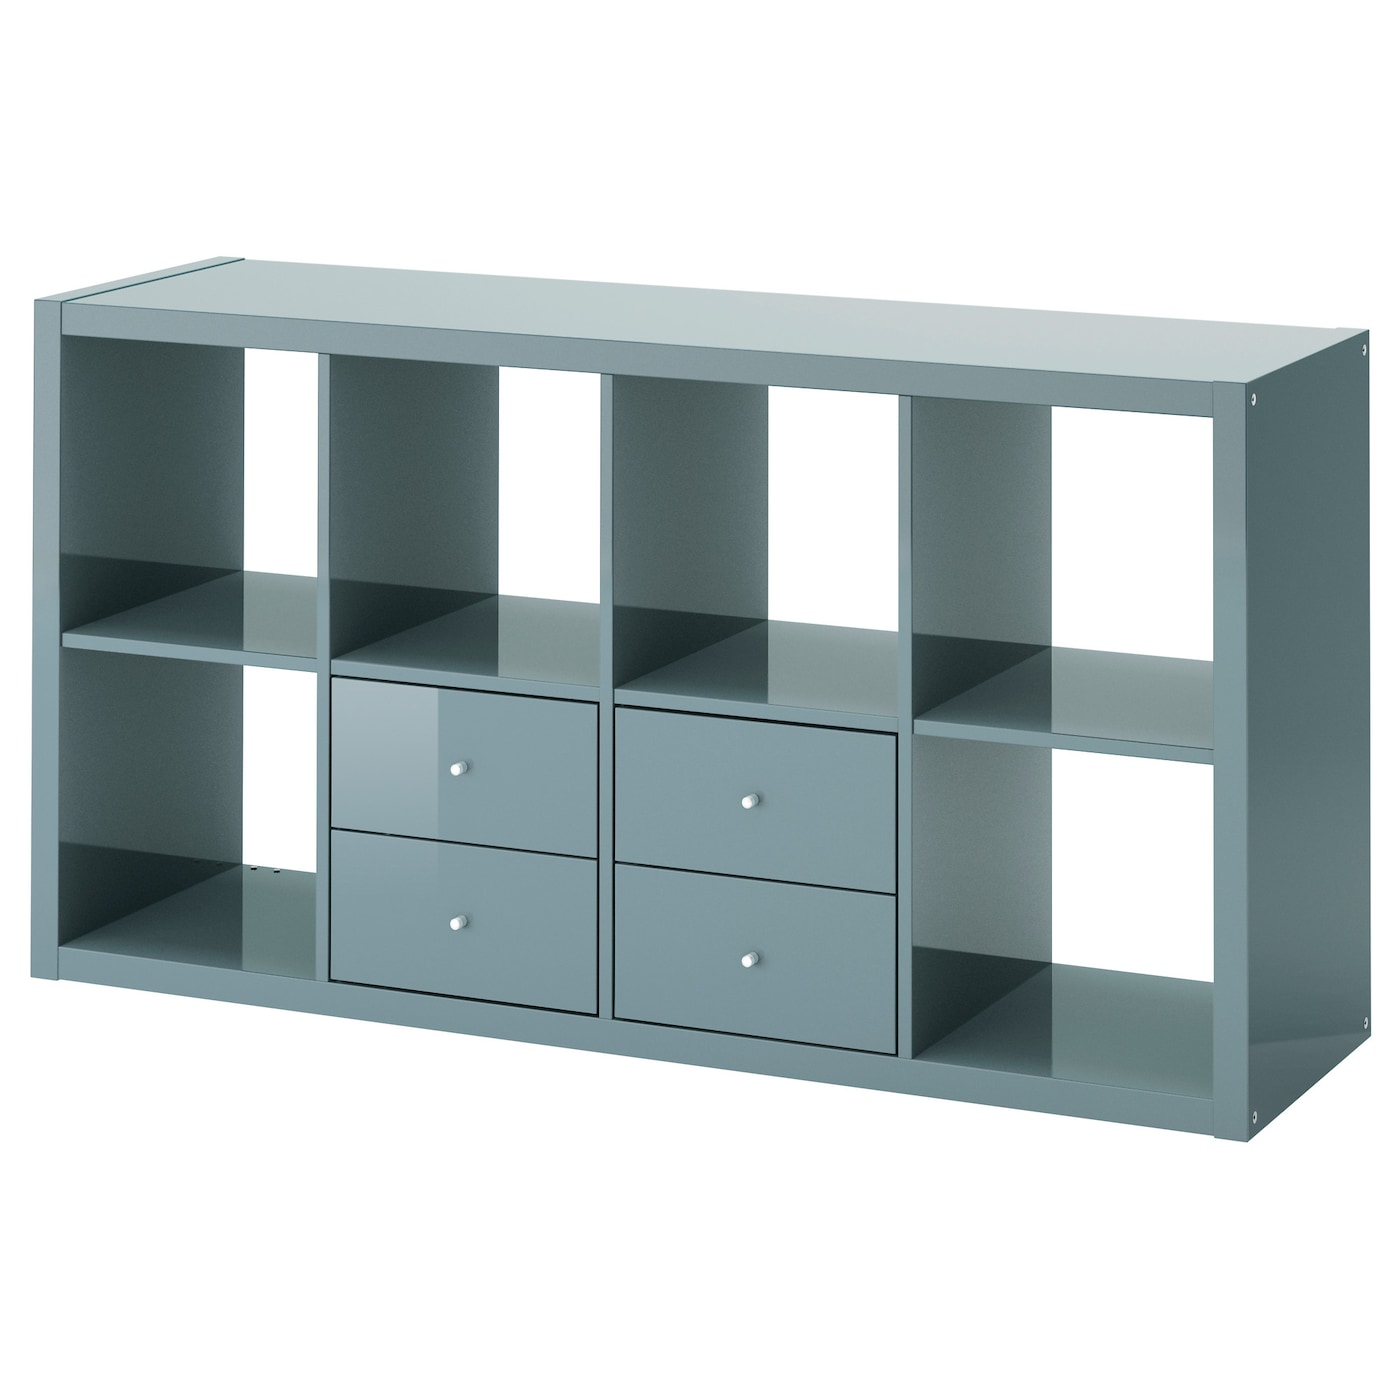 Kallax shelving unit with 2 inserts high gloss grey - Ikea tv wand ...